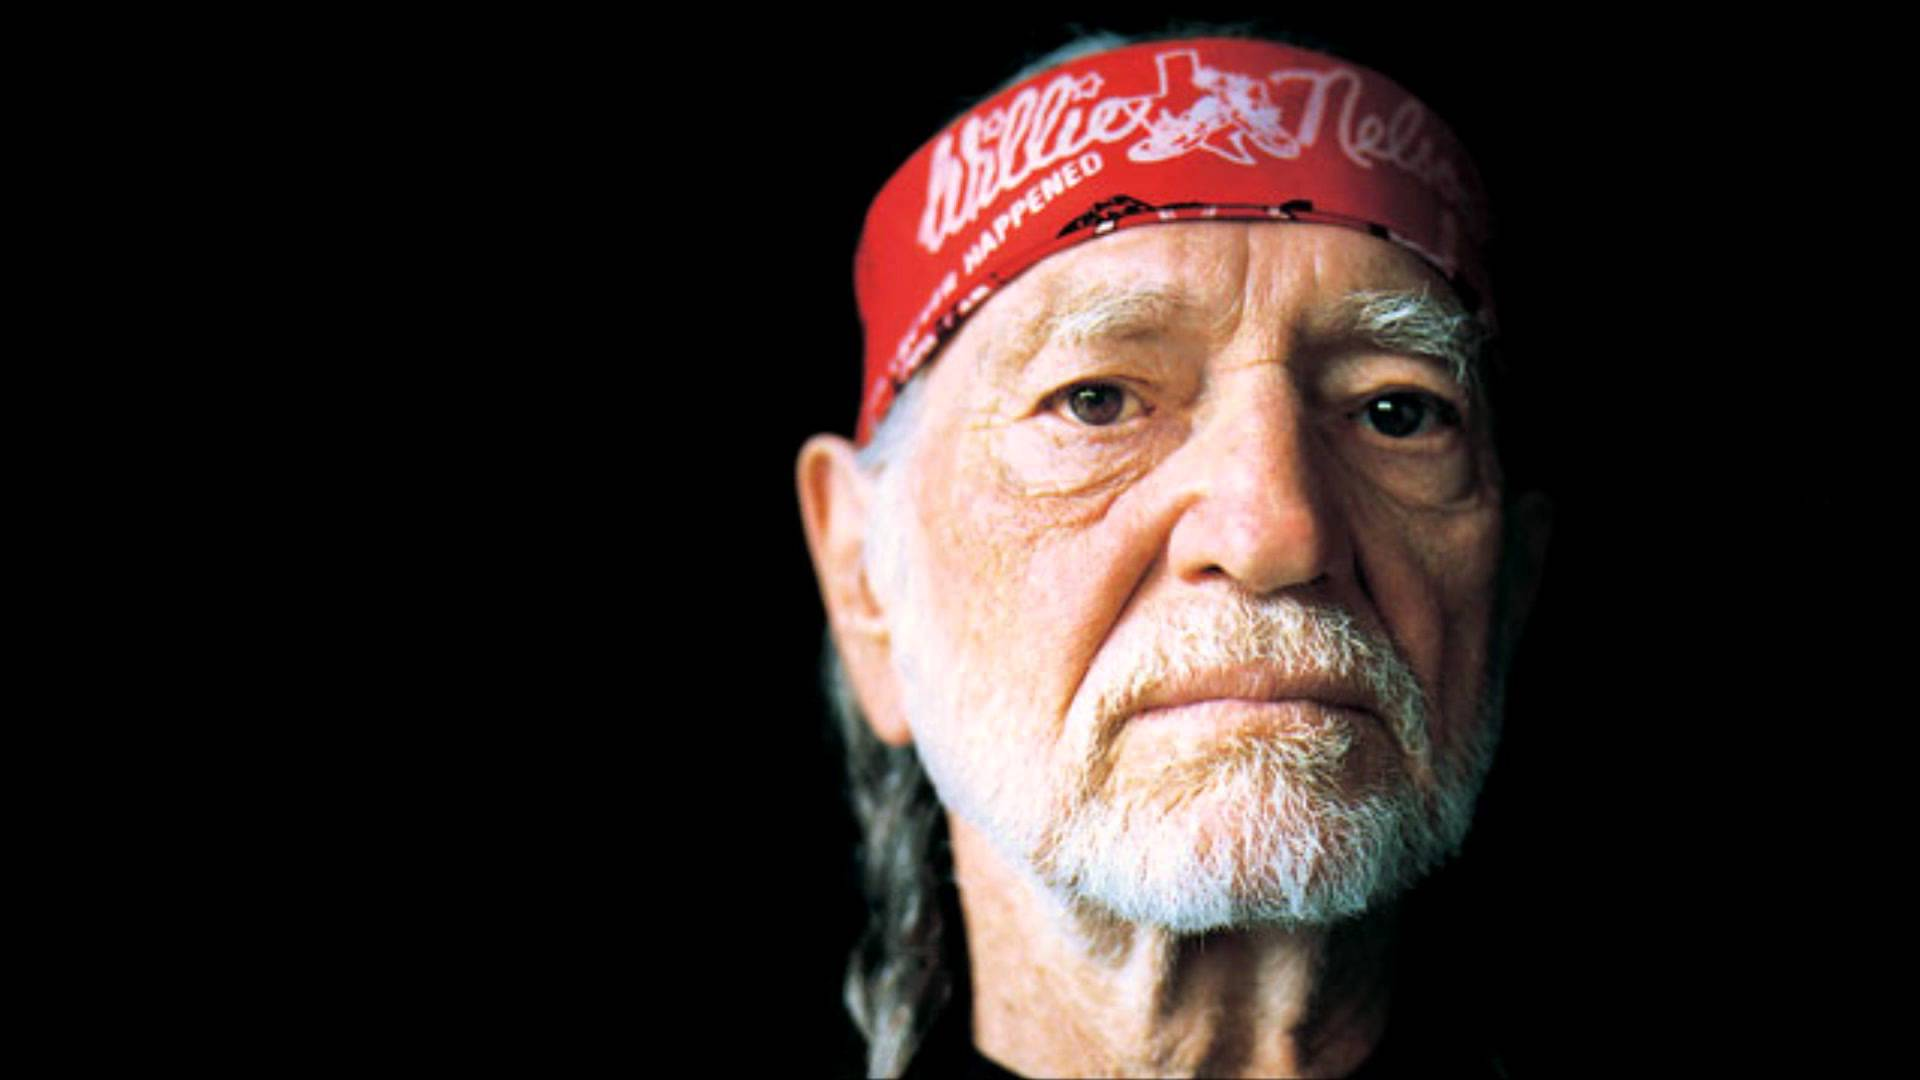 1920x1080 > Willie Nelson Wallpapers